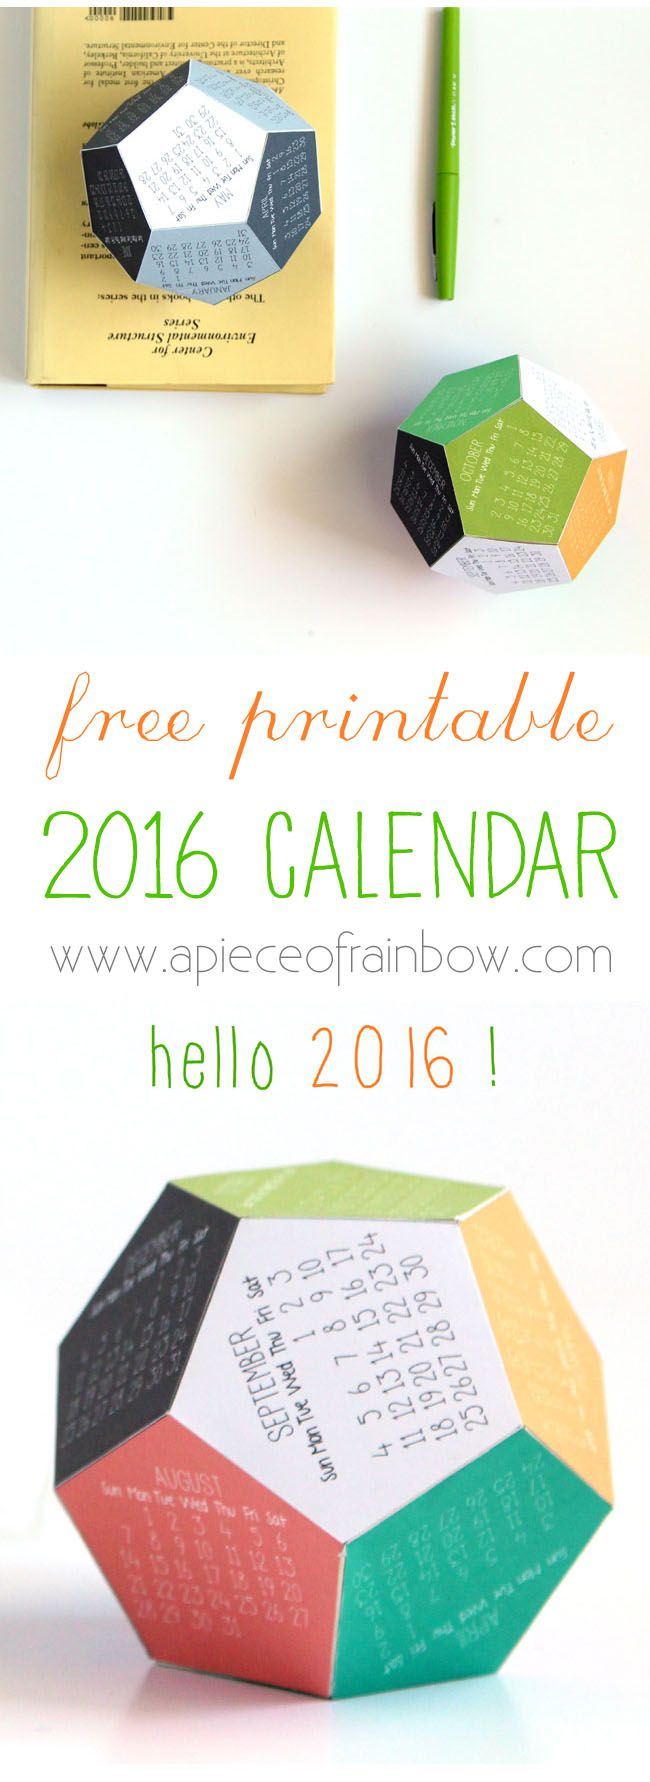 Make a 3D 2016 FREE Printable Calendar : a fun gift and a great Christmas tree ornament ! - A Piece Of Rainbow: